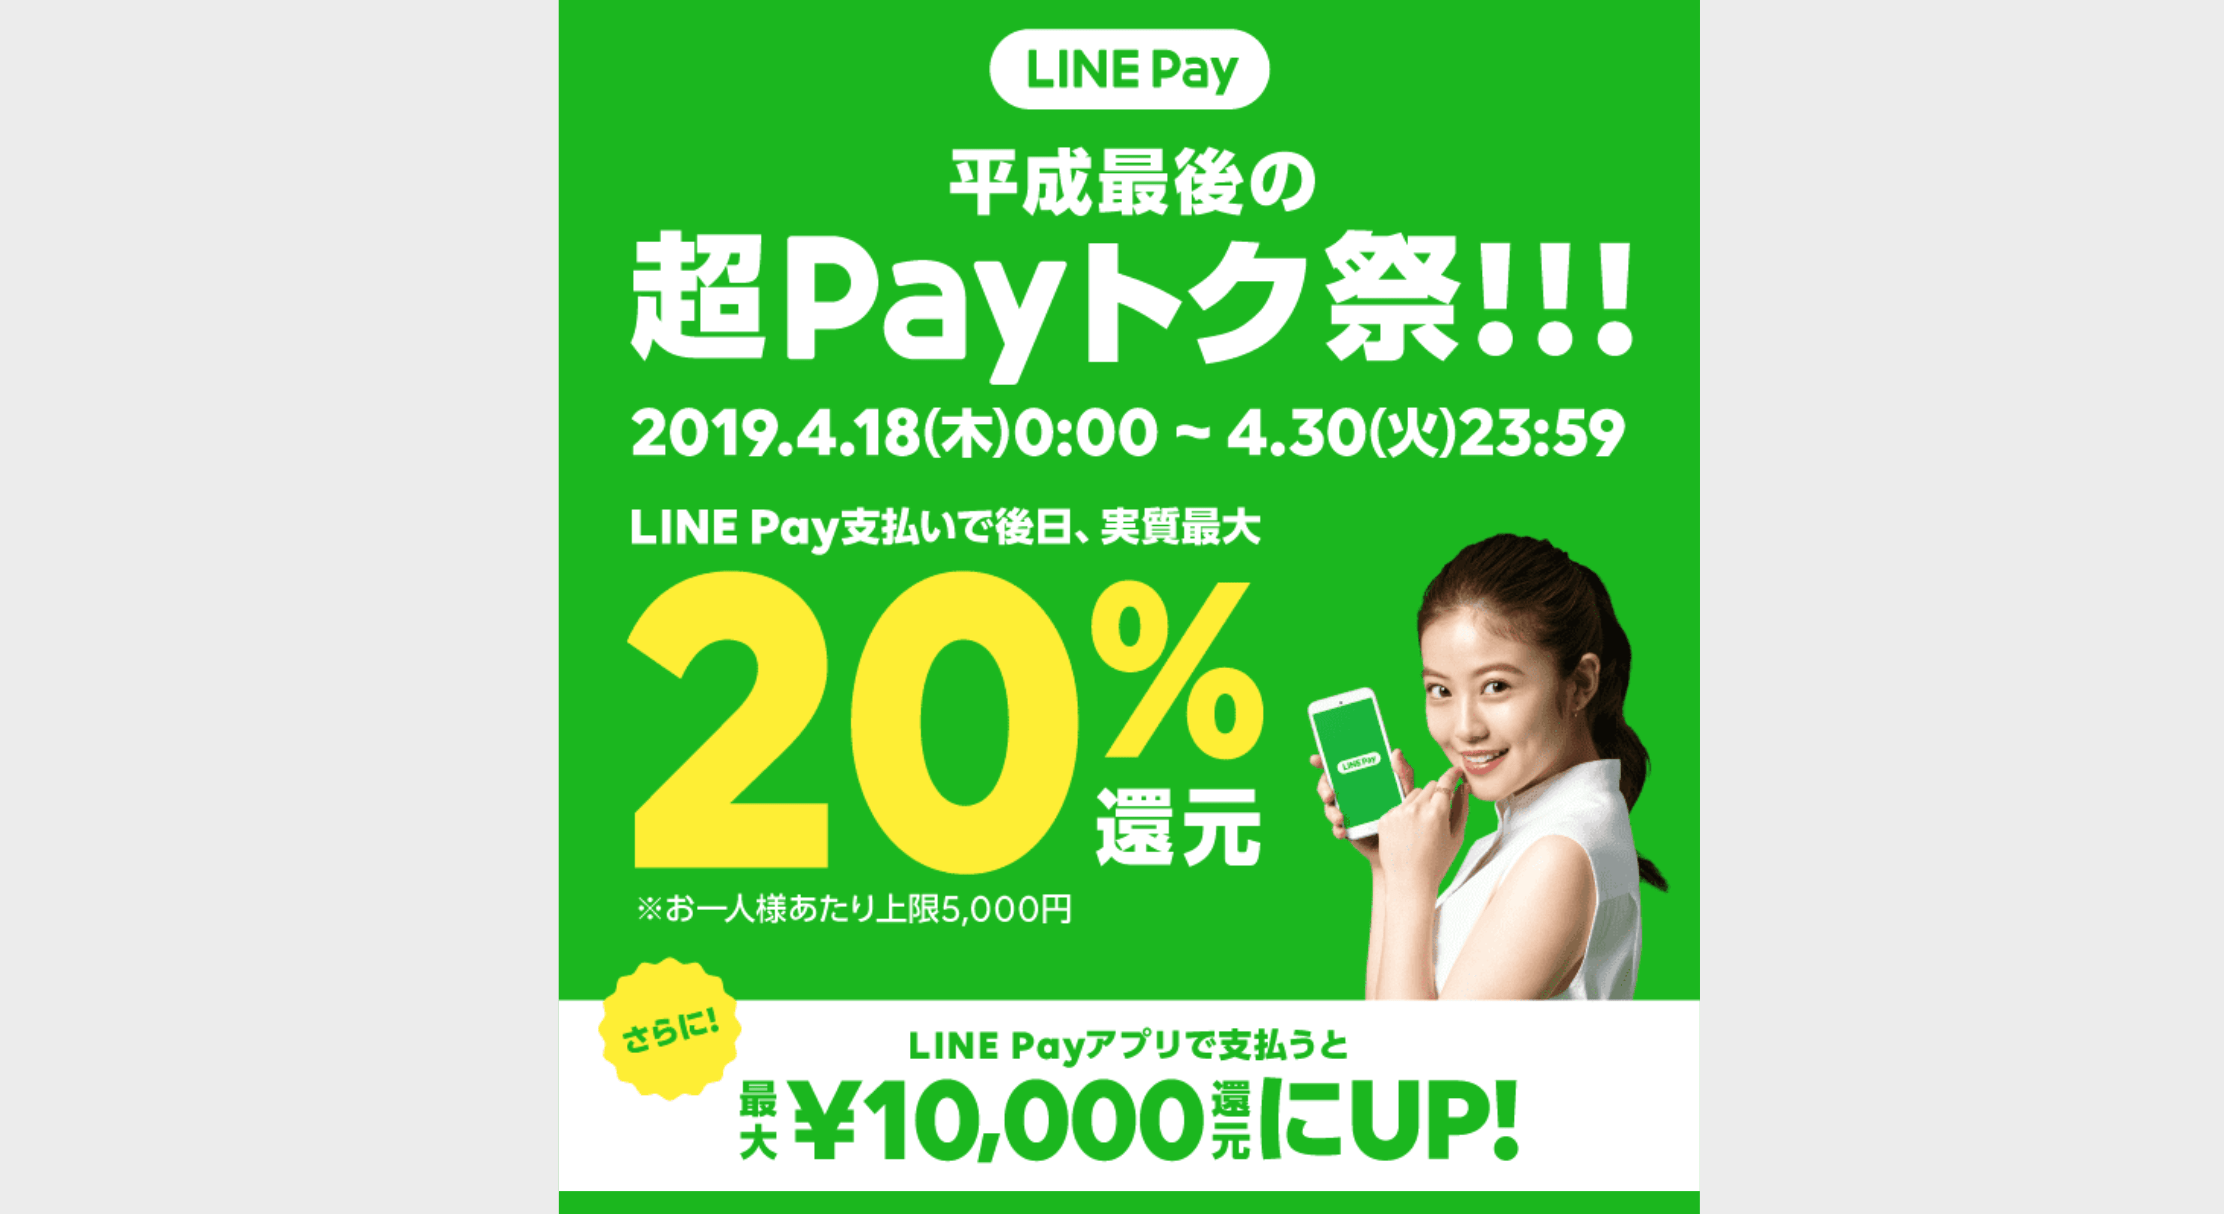 iOS版「LINE Pay」がリリース、最大10,000円還元の平成最後の超Payトク祭!開催中